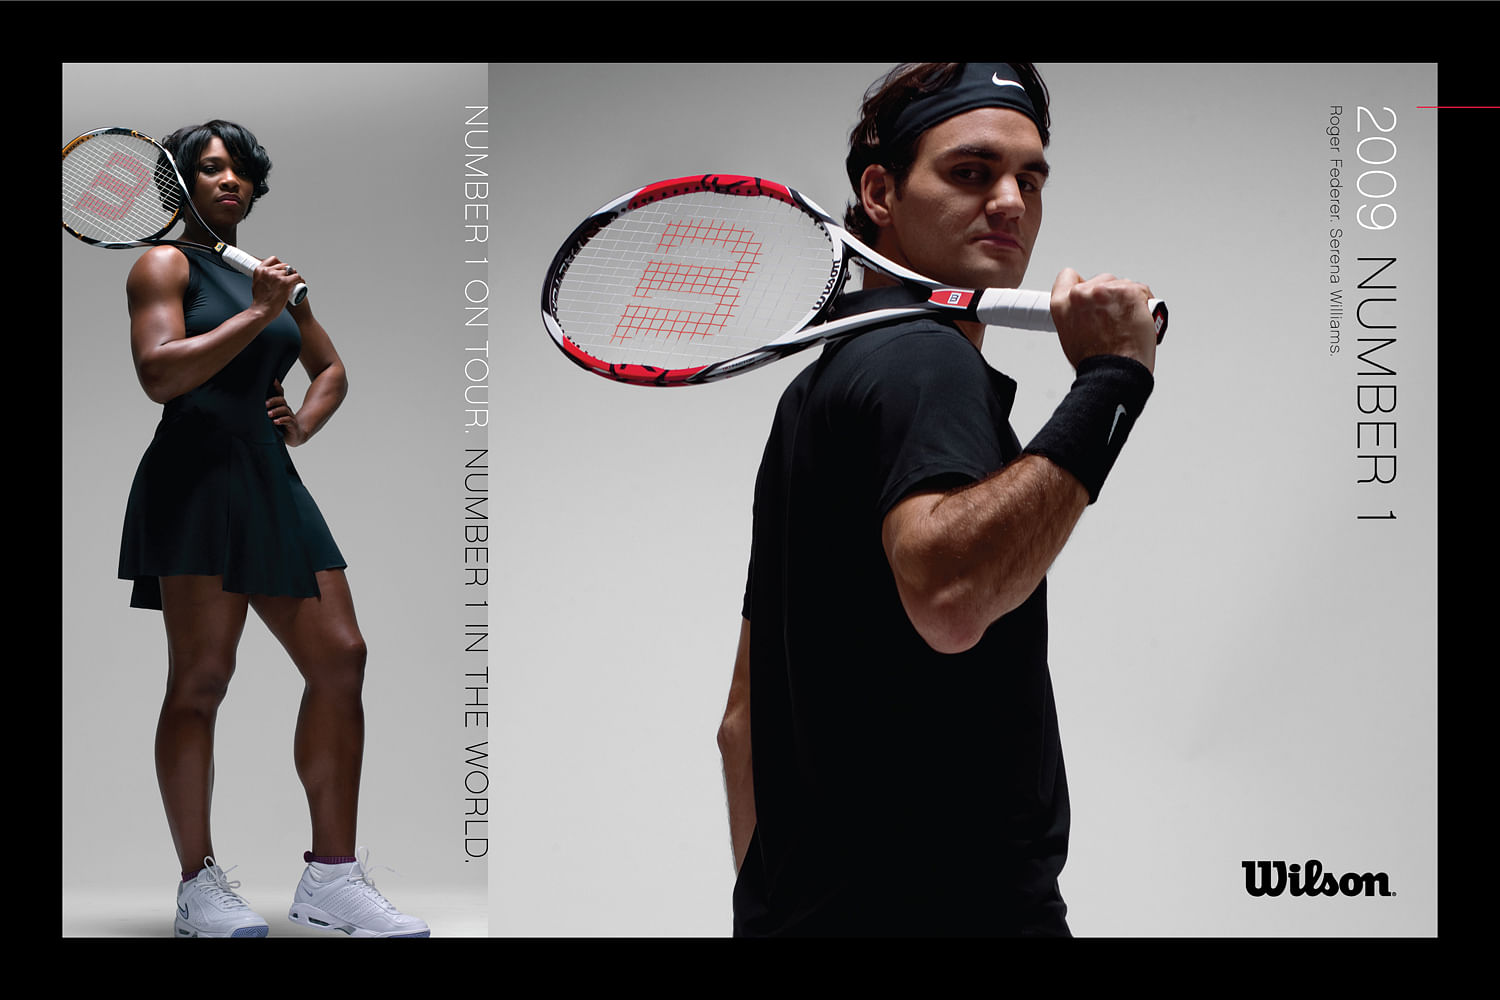 Roger Federer and Serena Williams: The tennis twins